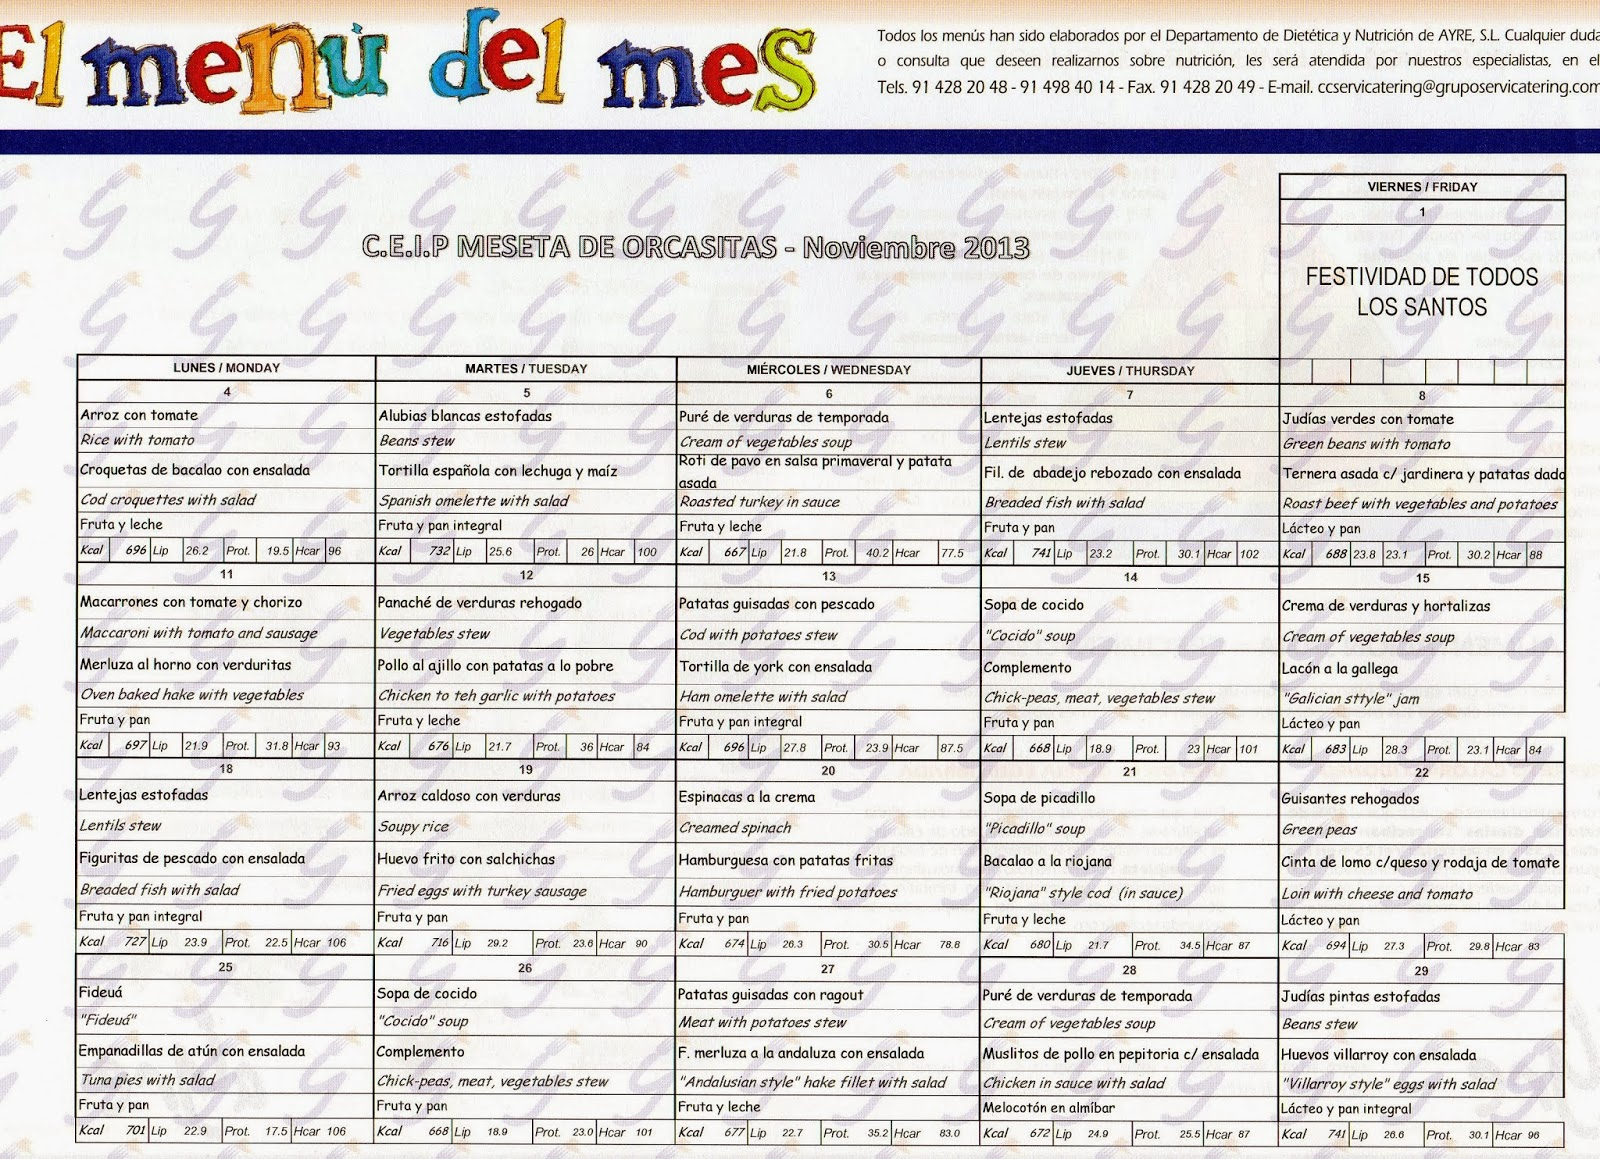 Emejing menu comedor ugr contemporary casas ideas for Comedores universitarios ugr